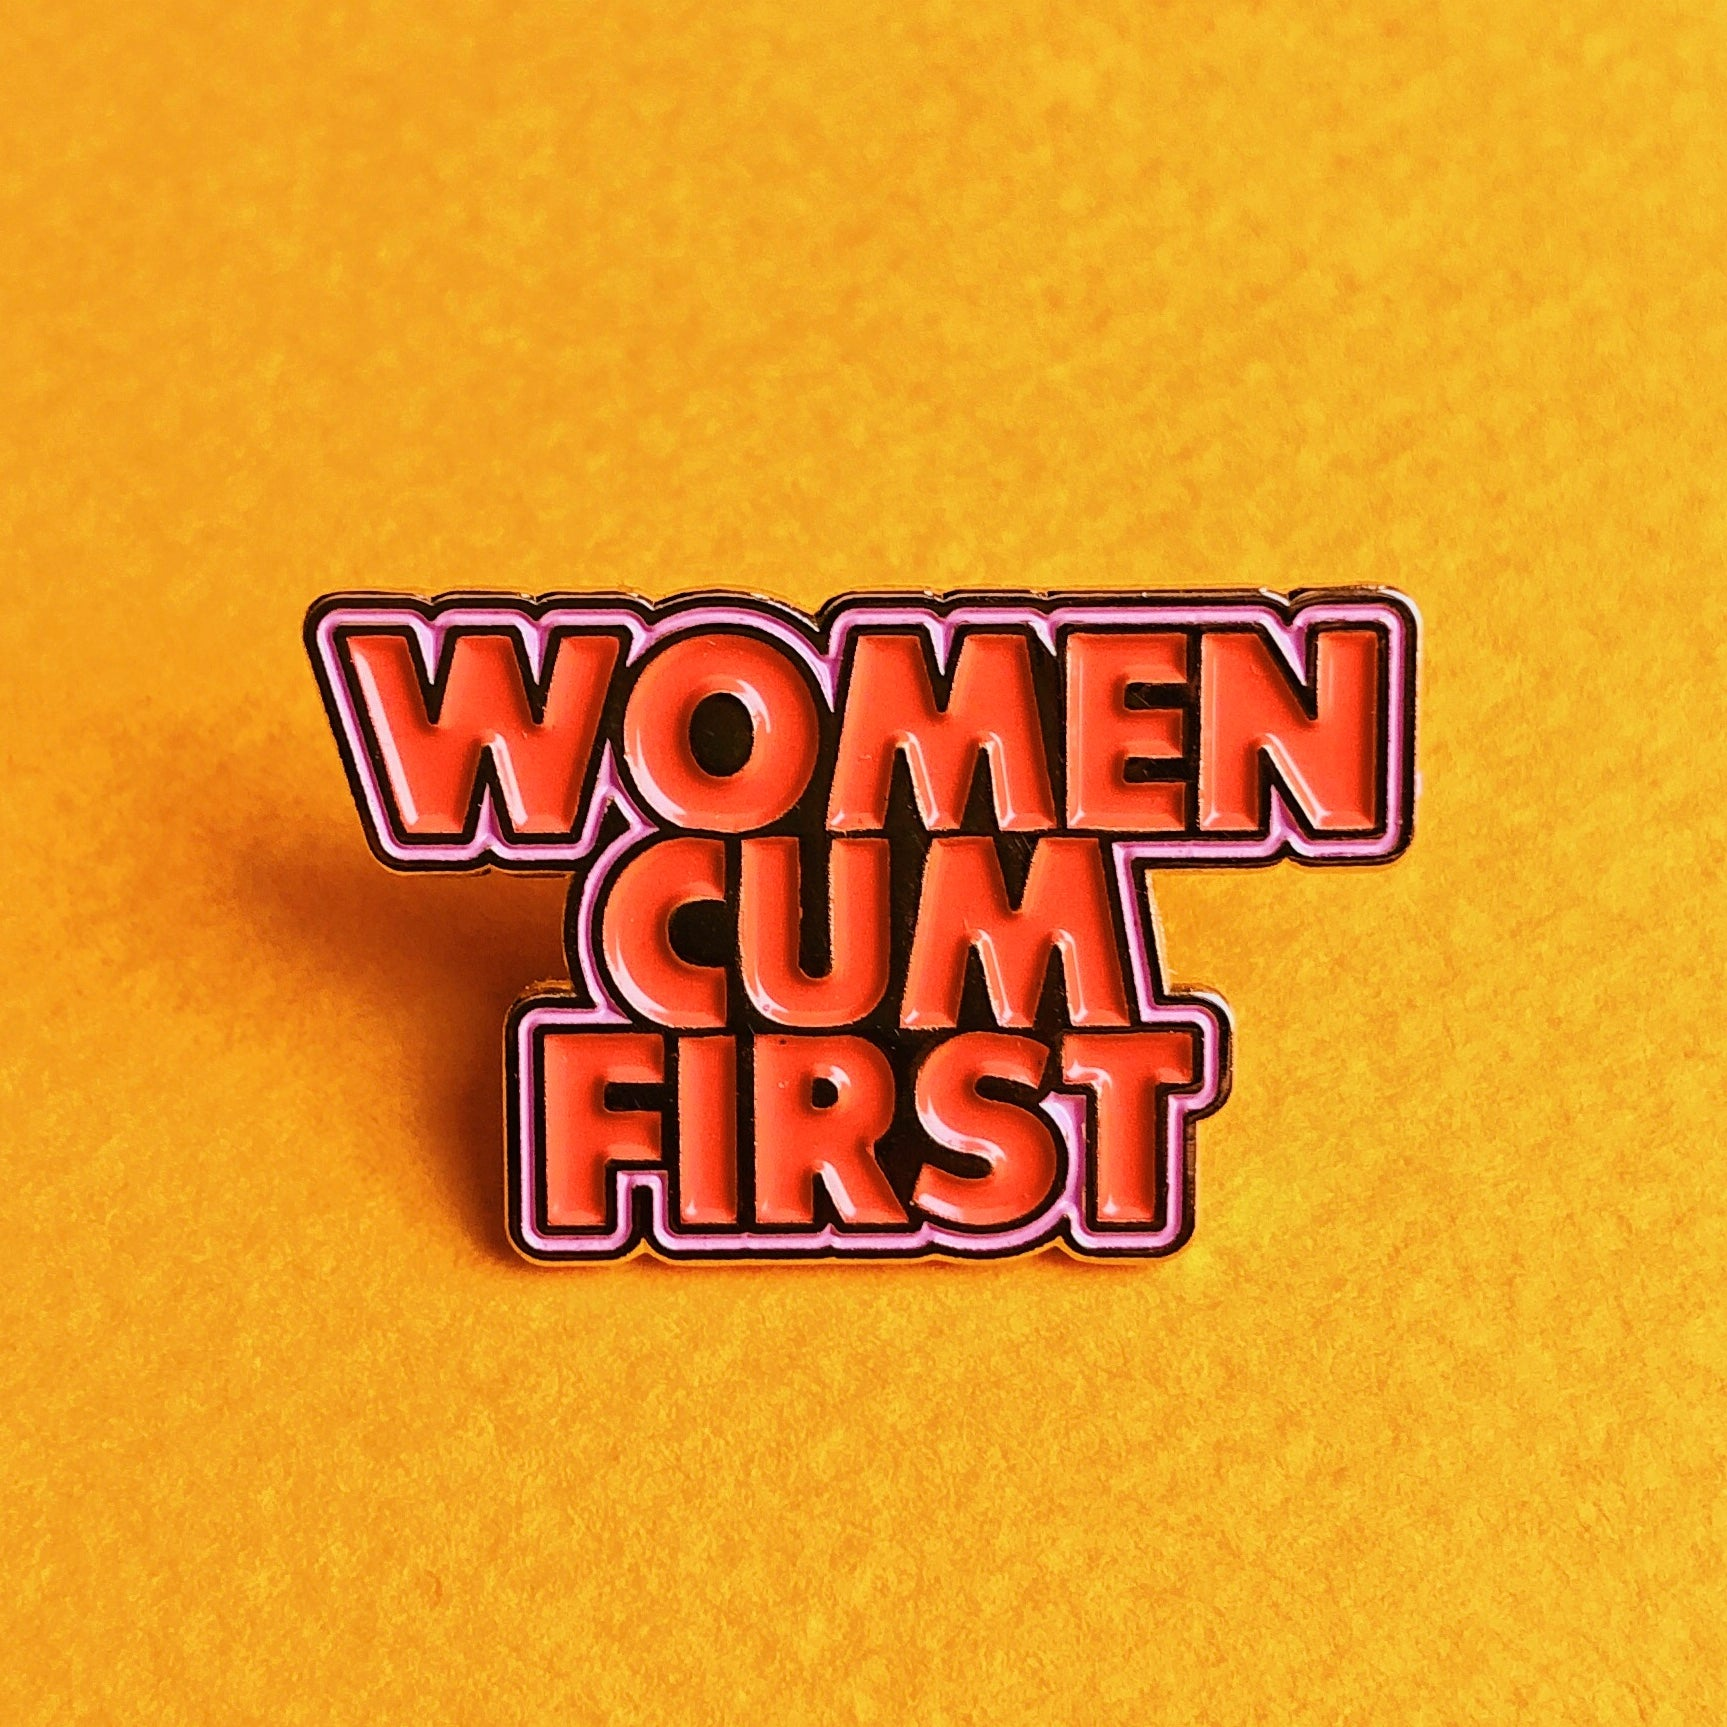 """Women Cum First"" enamel pin - Brownie Points"